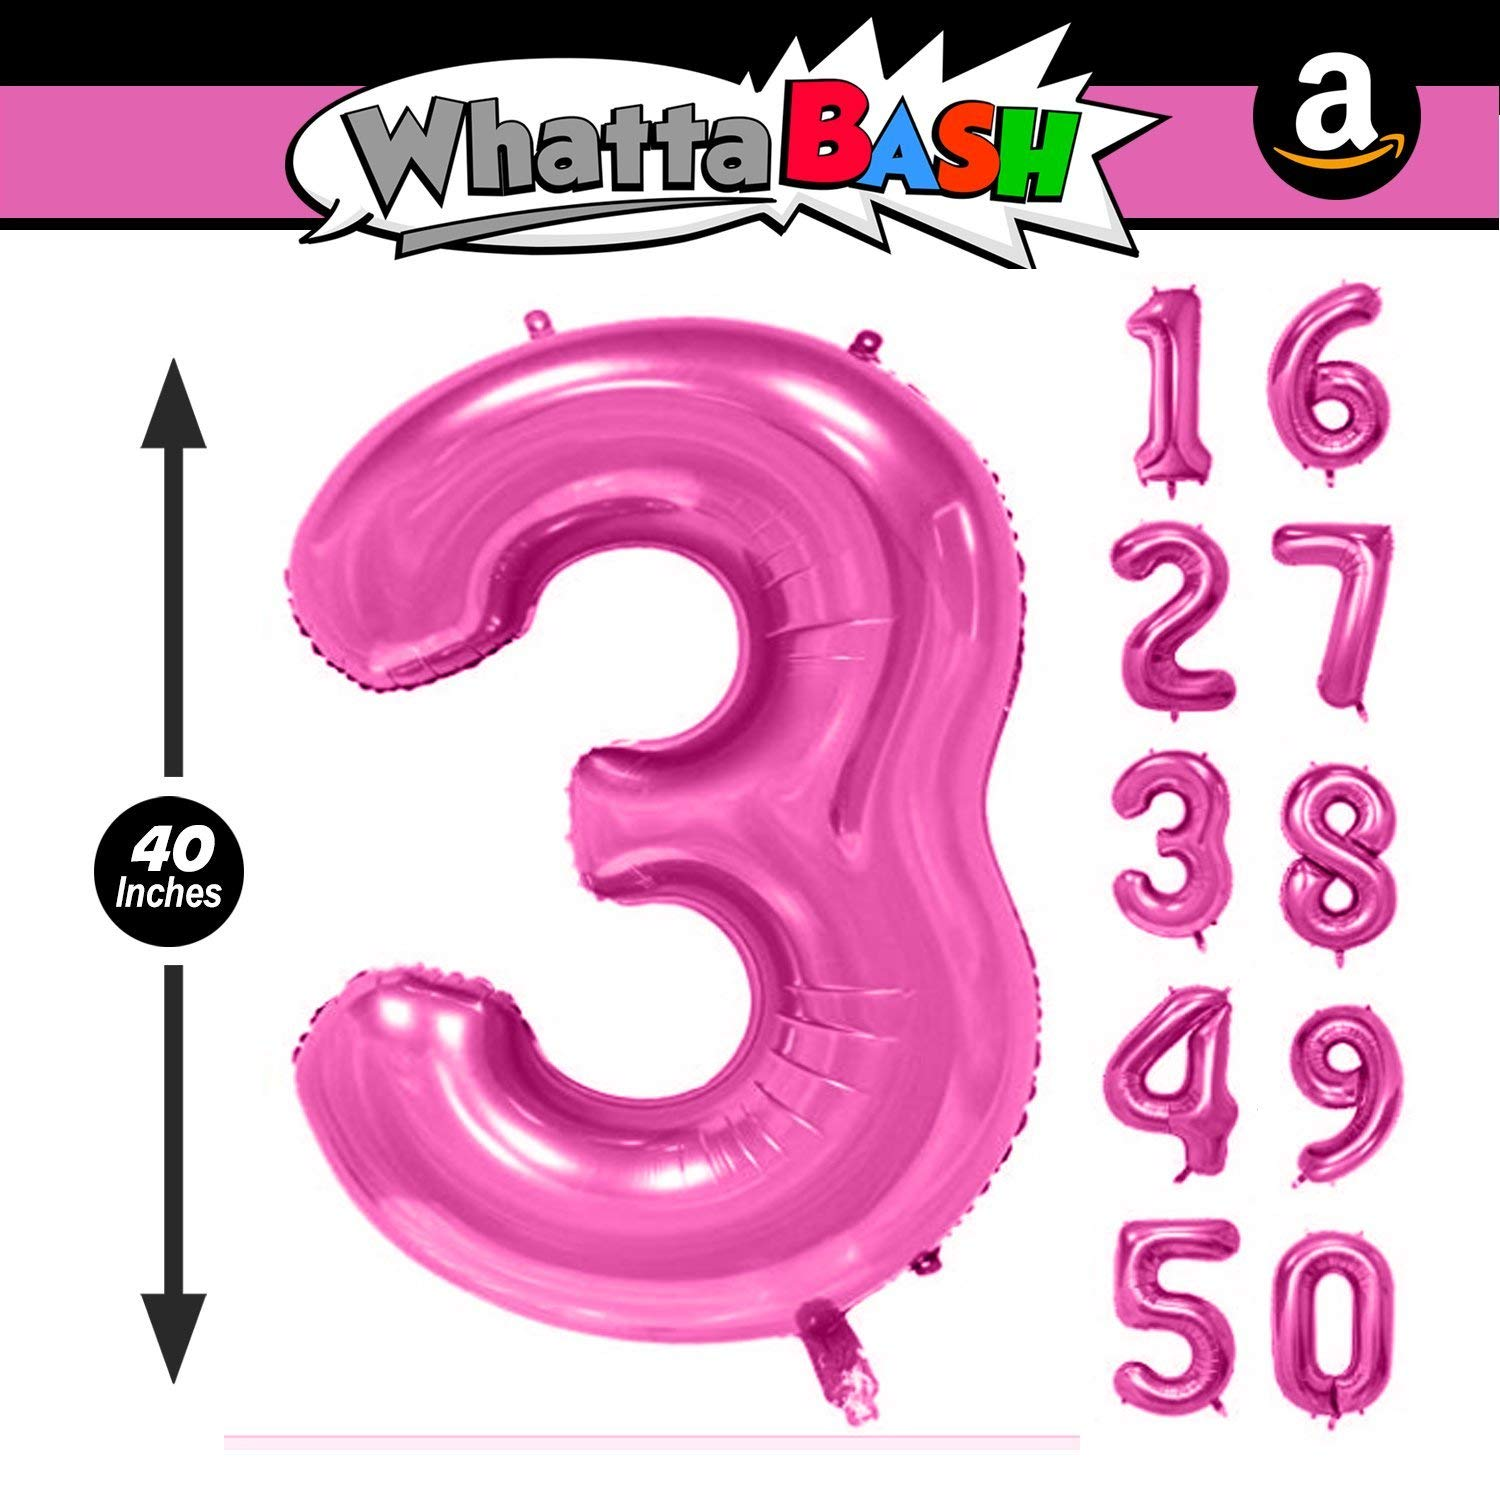 Rose Gold Number 7 40 Inch Rose Gold Jumbo Number 7 Seven Balloon Giant Large Balloons Foil Decorations Supplies For Birthday Party Wedding Shower Anniversary Engagement Photo Shoot Gift Accessories